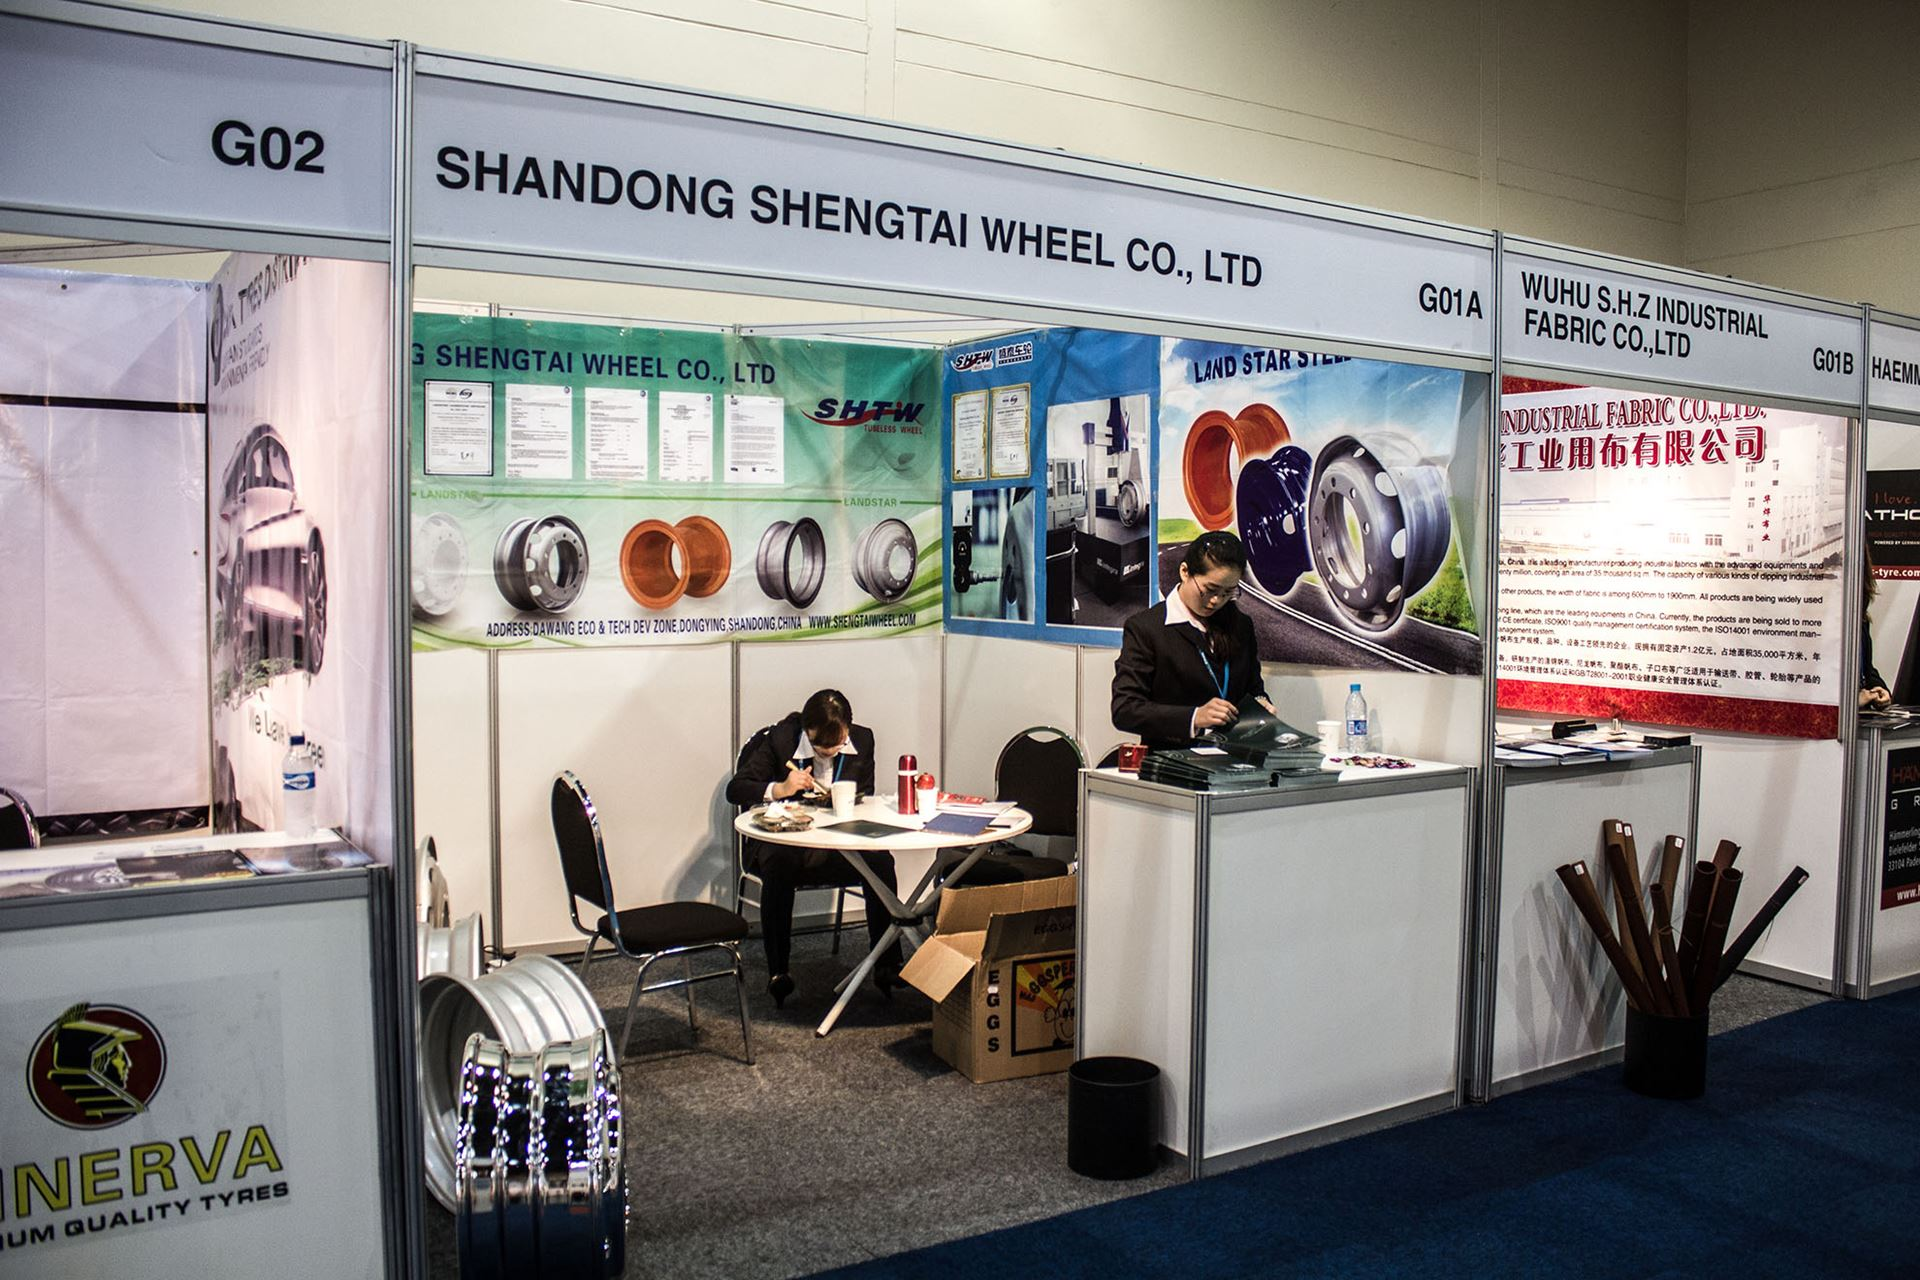 Tyre-Expo-South-Africa-2014-shangdong-shengtai-tyres